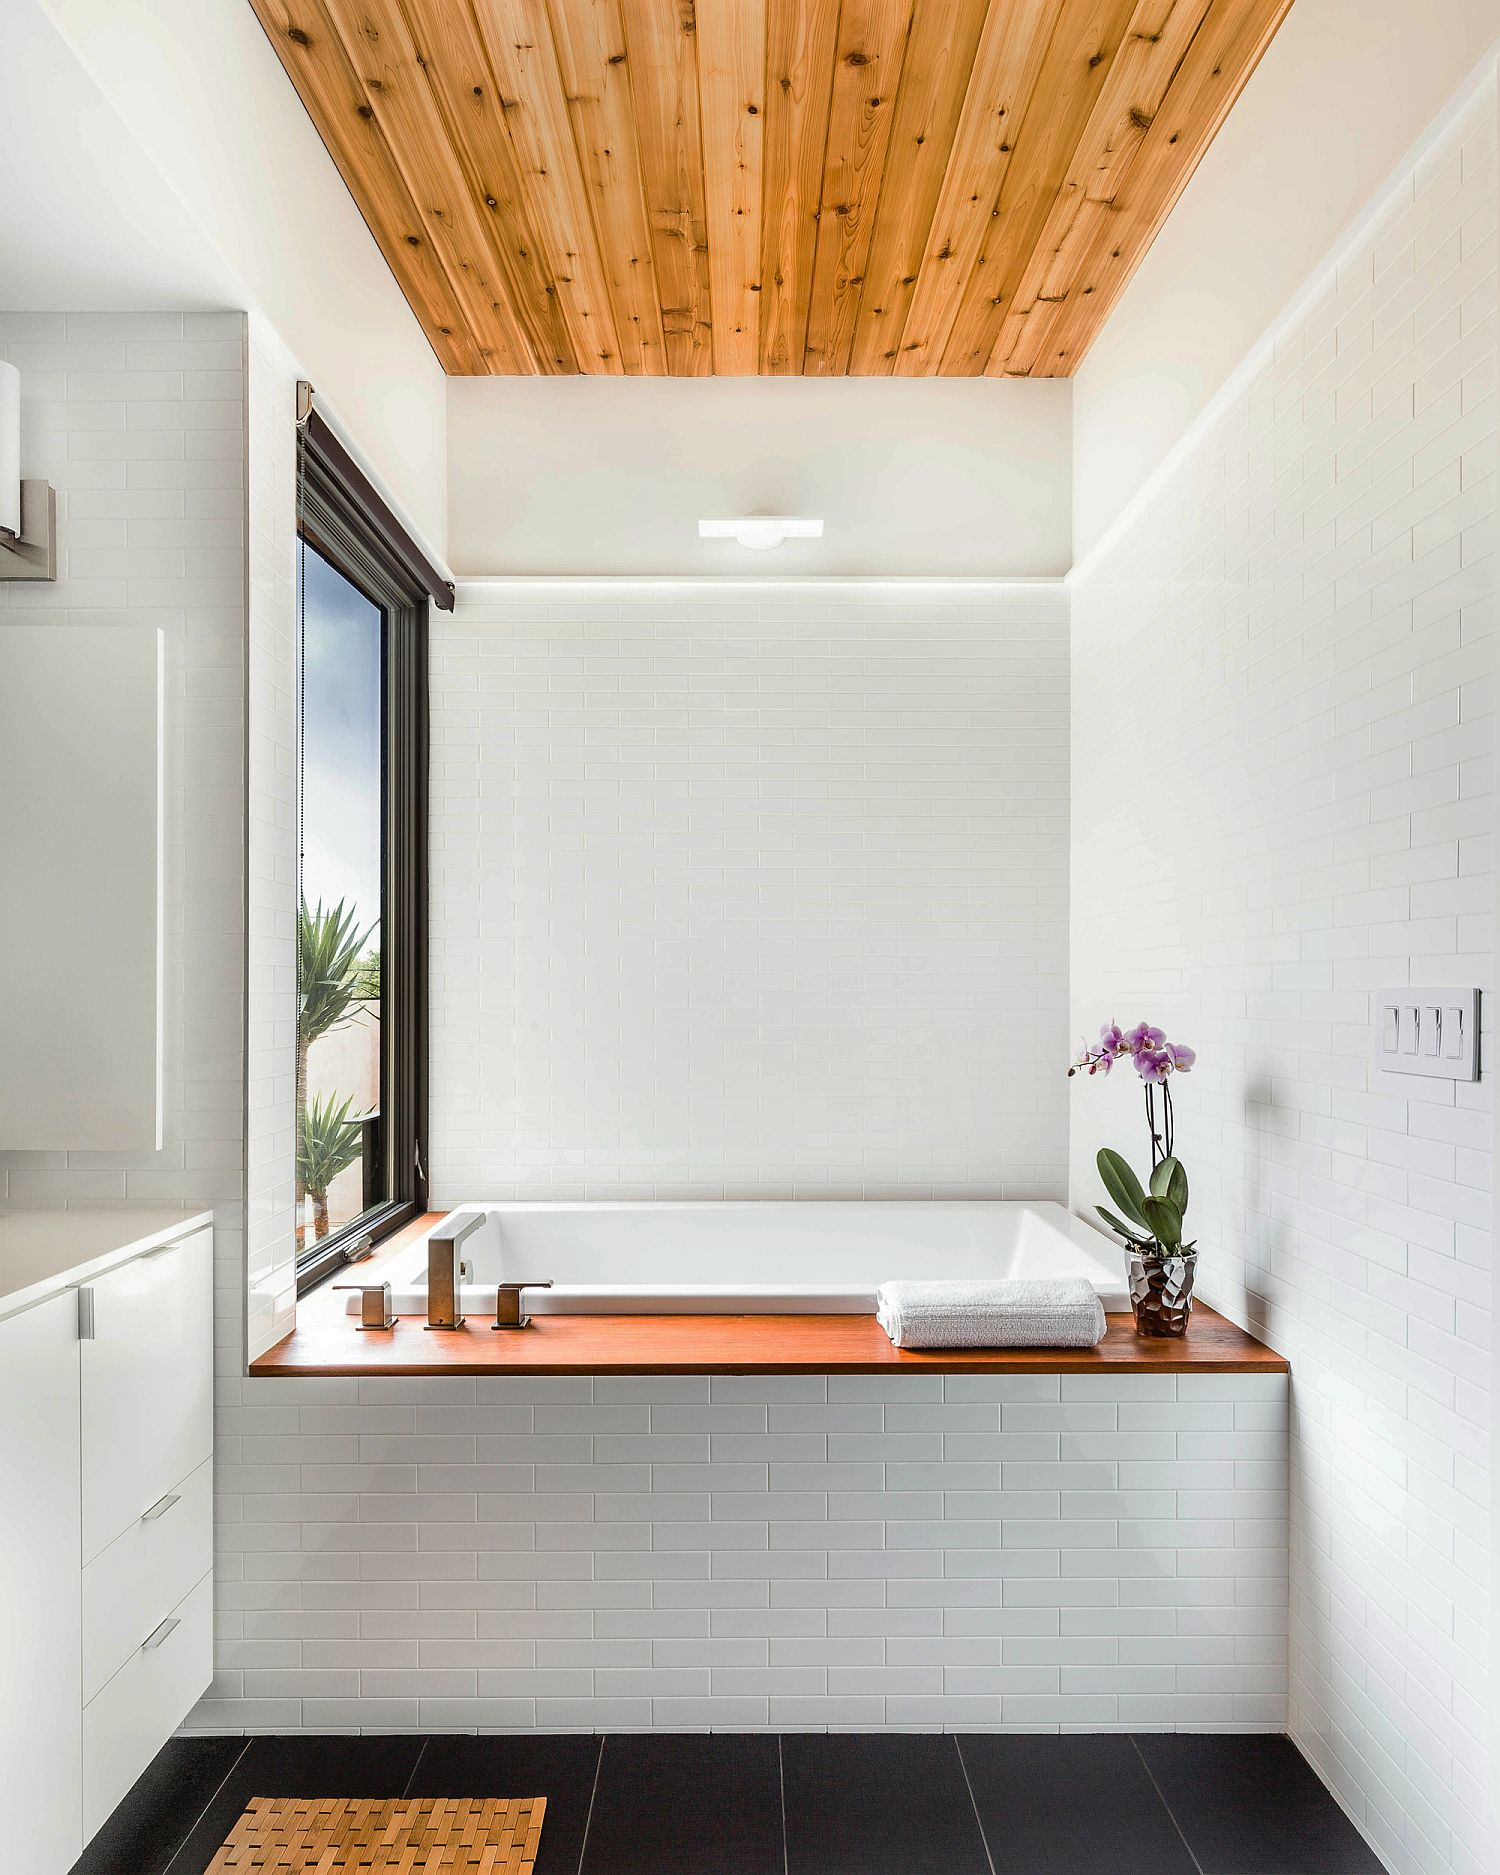 Wooden ceiling of the bathroom steals the show instantly